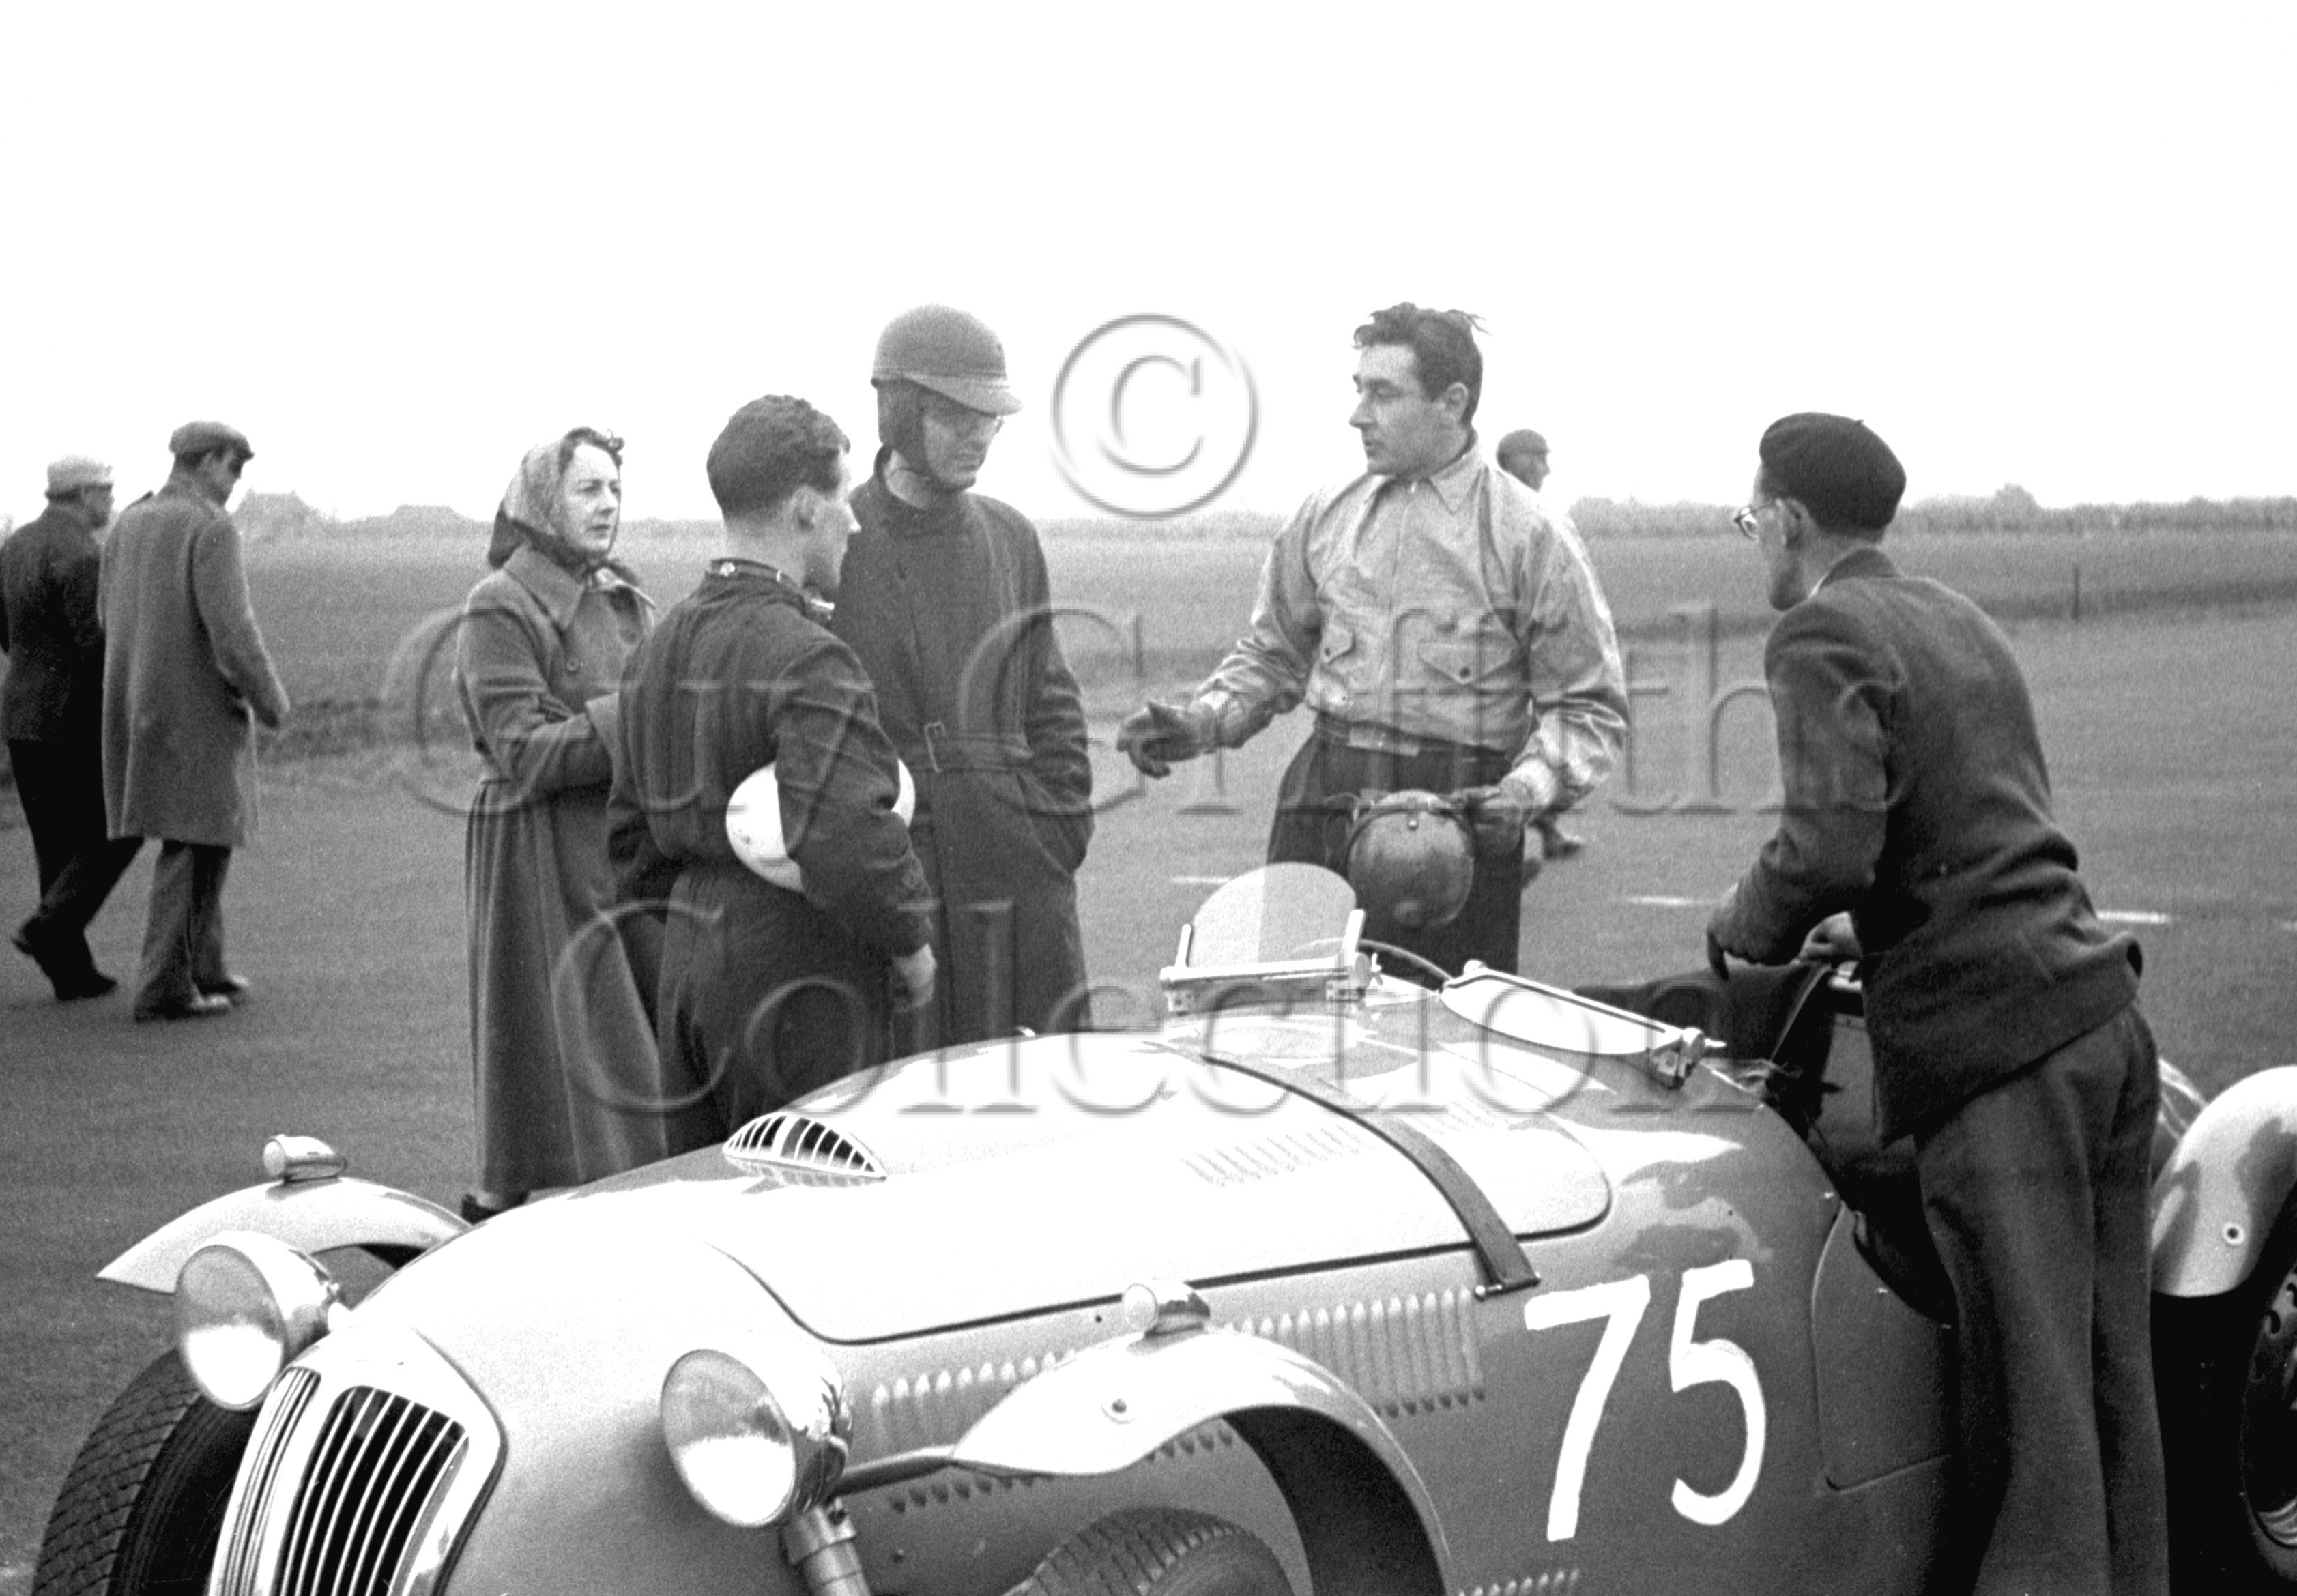 52-471–T-Crook–R-Salvadori–Frazer-Nash–Castle-Combe–12-04-1952.jpg - The Guy Griffiths Collection